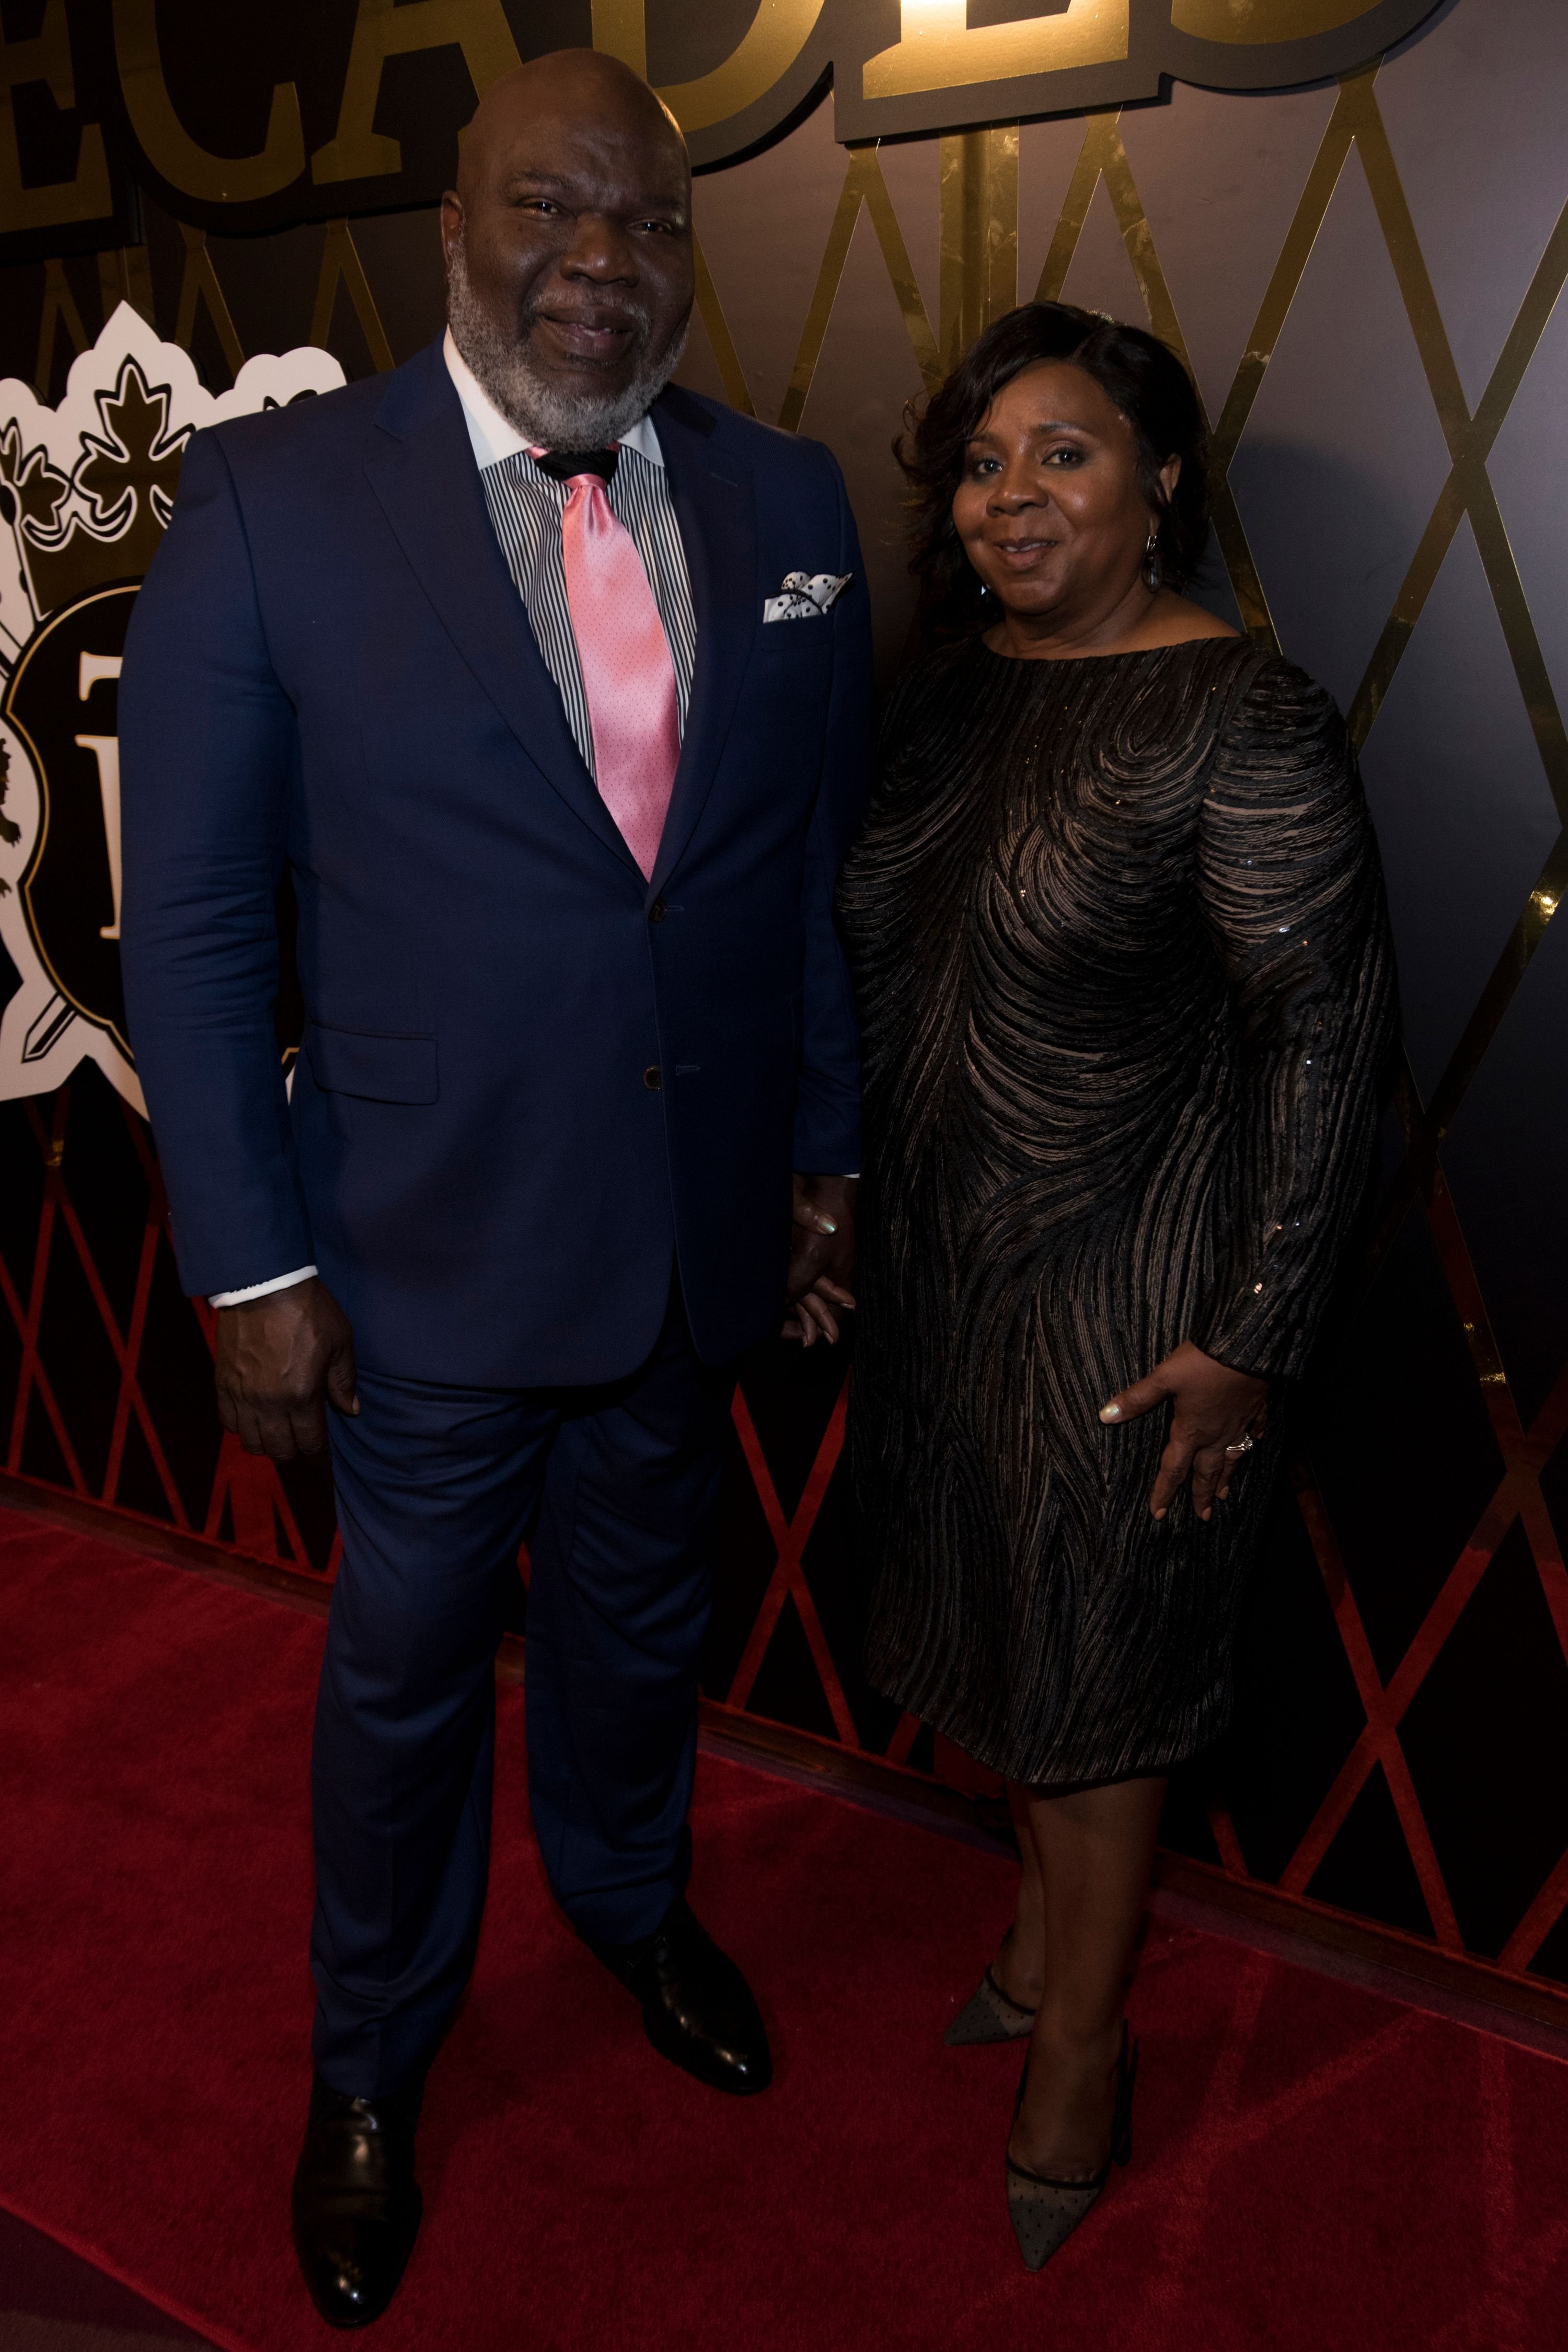 T.D. and Serita Jakes at the Bishop's 60th birthday celebration on June 30, 2017 in Dallas. | Photo: Getty Images